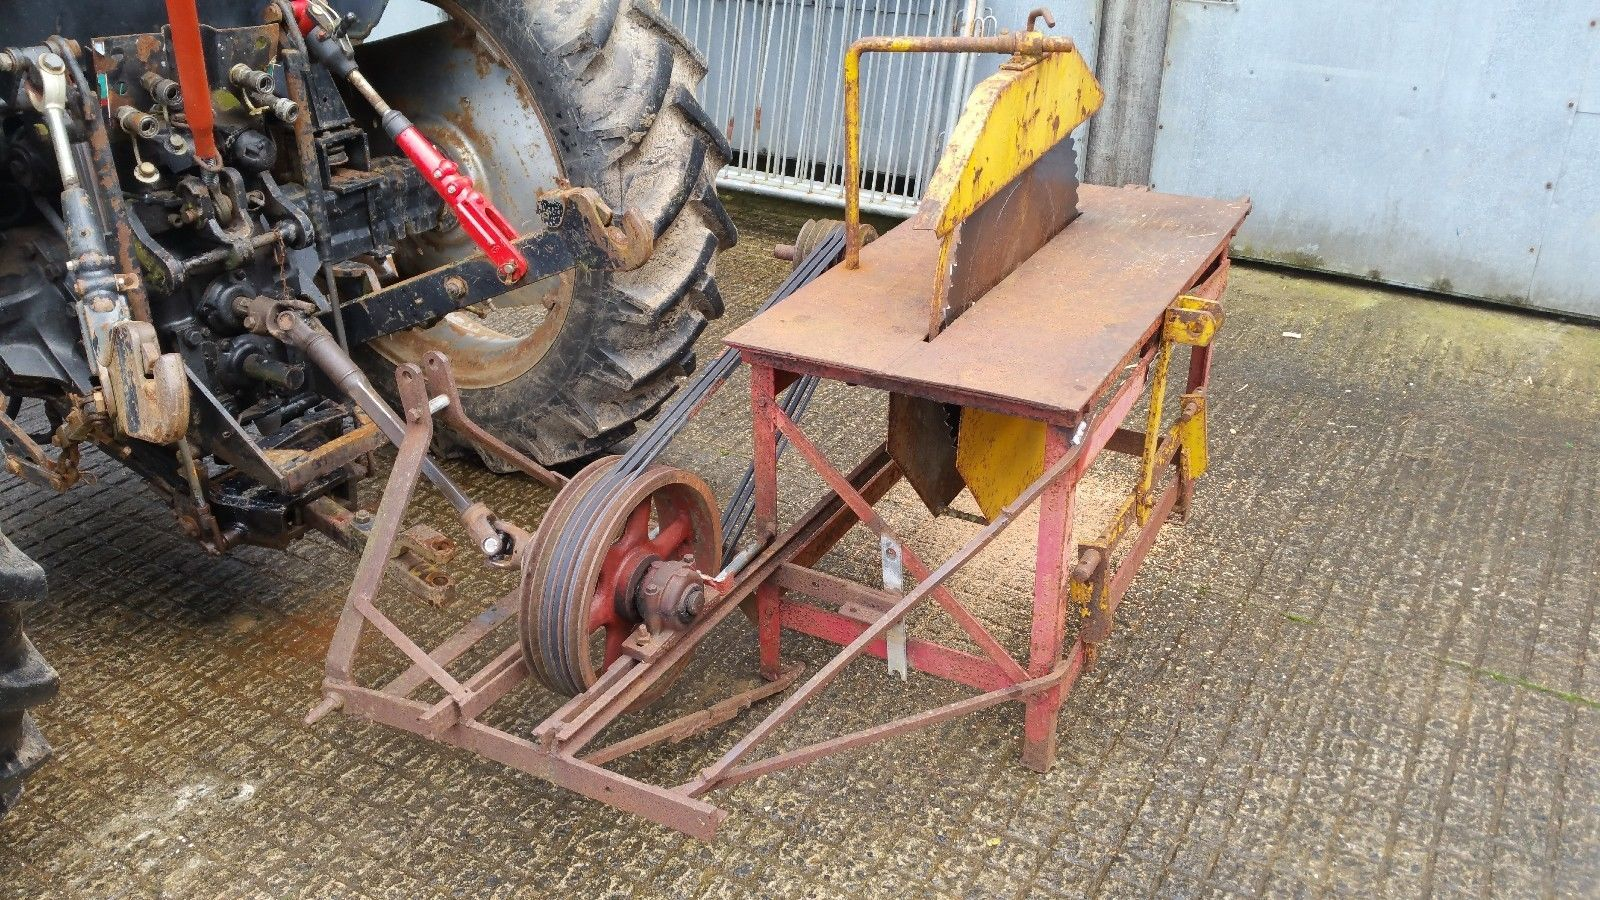 Tractor Pto Driven Circular Saw Bench Buy Now 300 Devon Ebay Circular Saw Circular Ebay